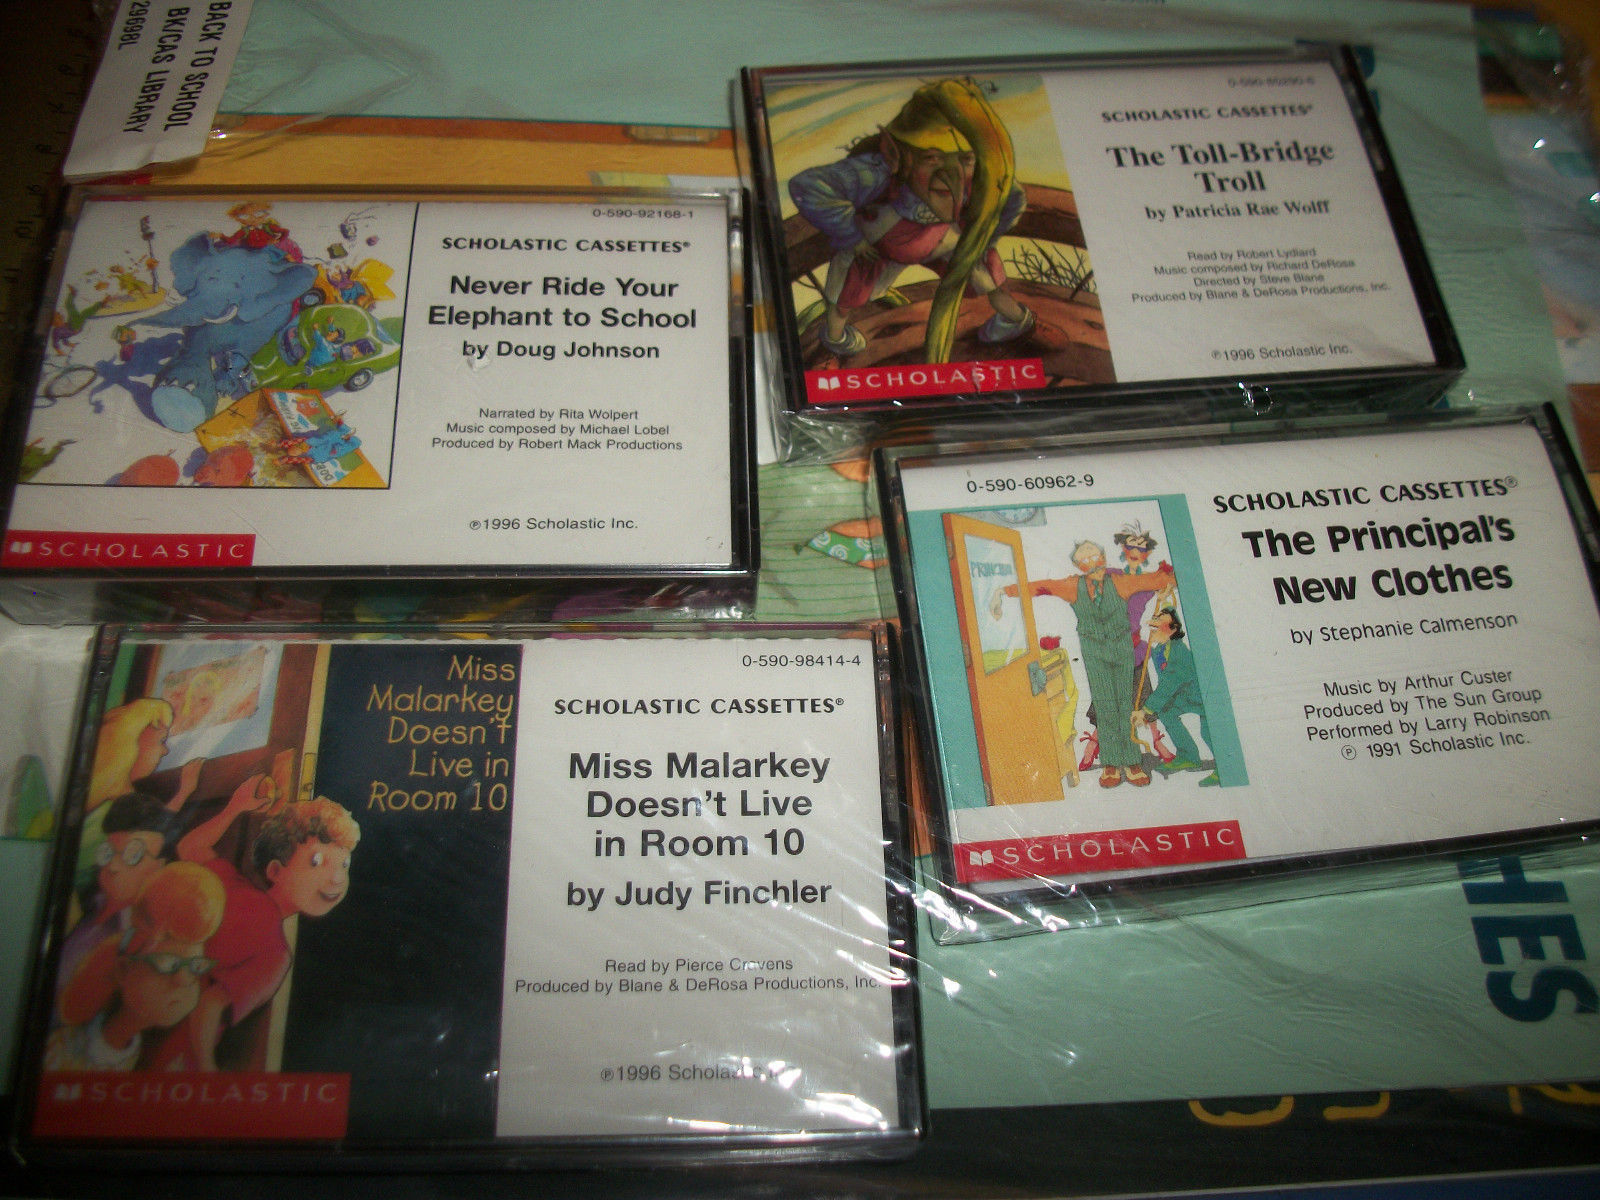 5 Scholastic Cassette Tapes-Norman Bridwell Clifford's stories-free ship